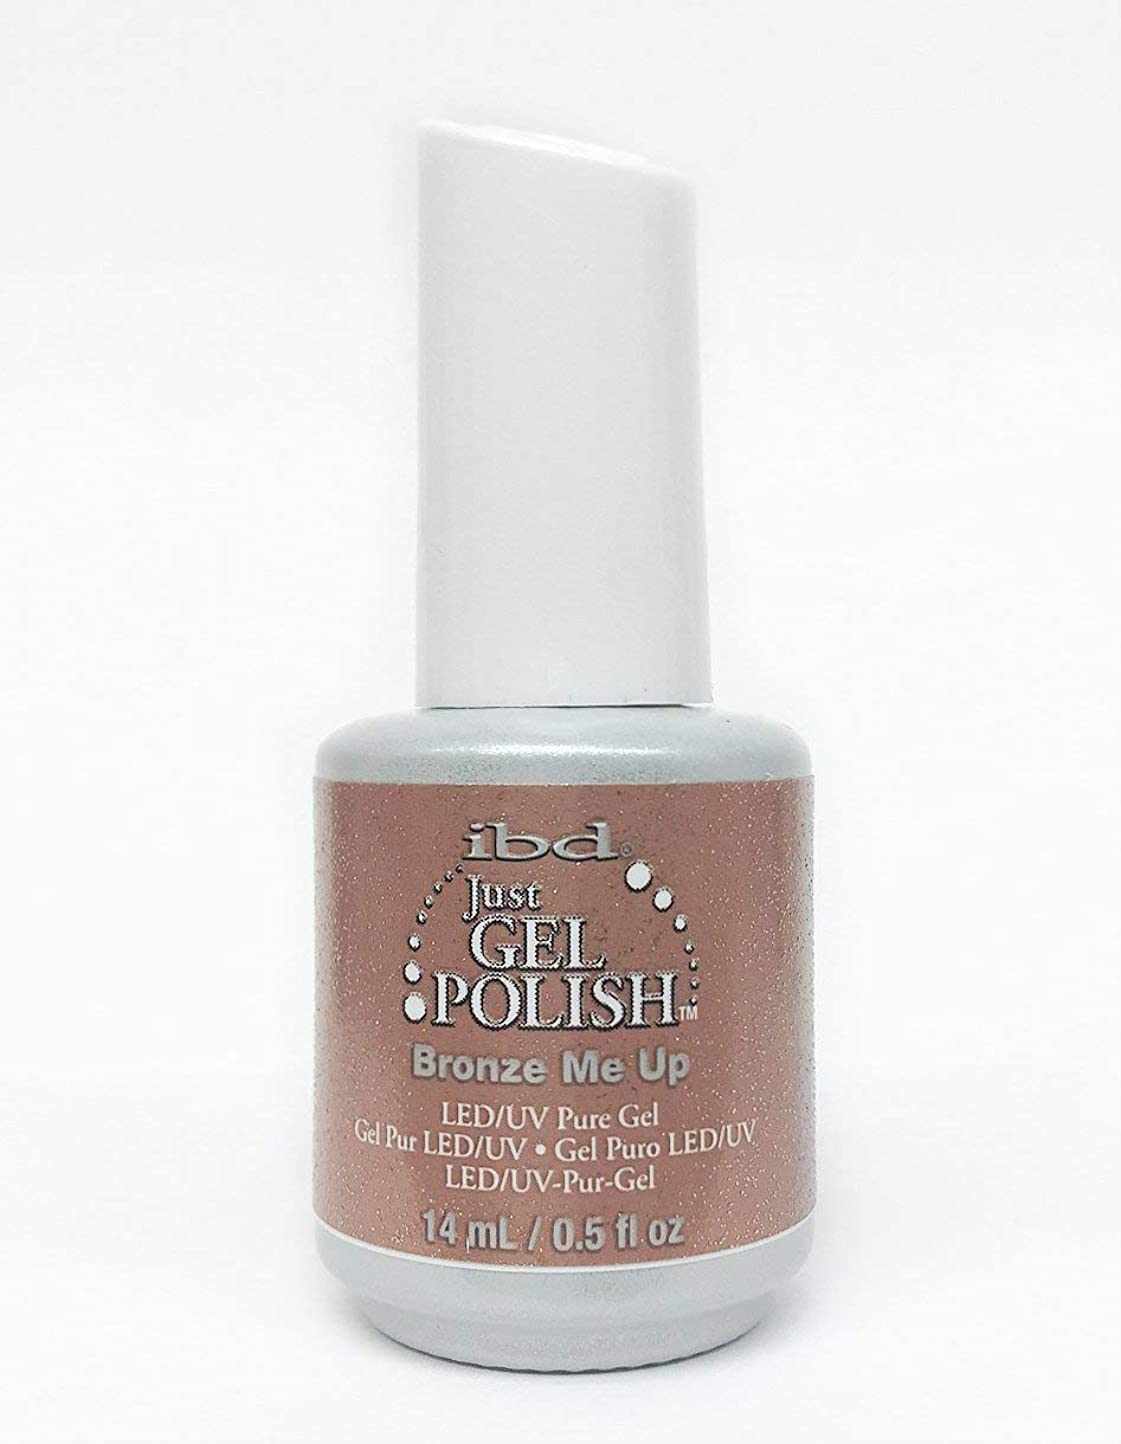 否認する医学独裁ibd Just Gel Nail Polish - Bronze Me Up - 14ml / 0.5oz